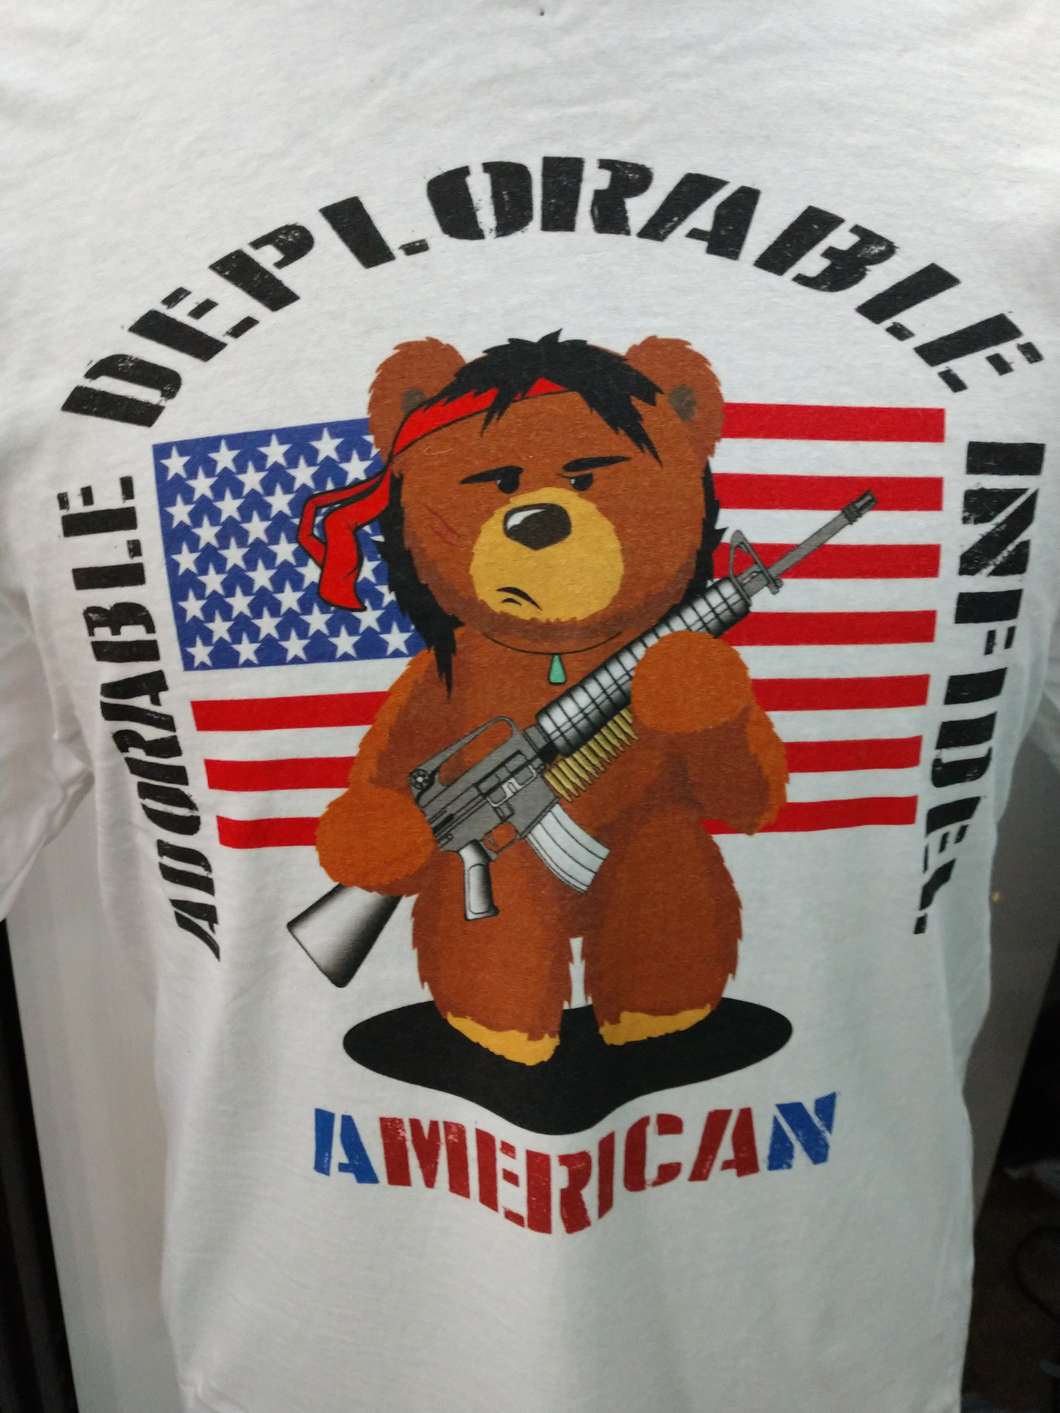 Adorable Deplorable Infidel shirt